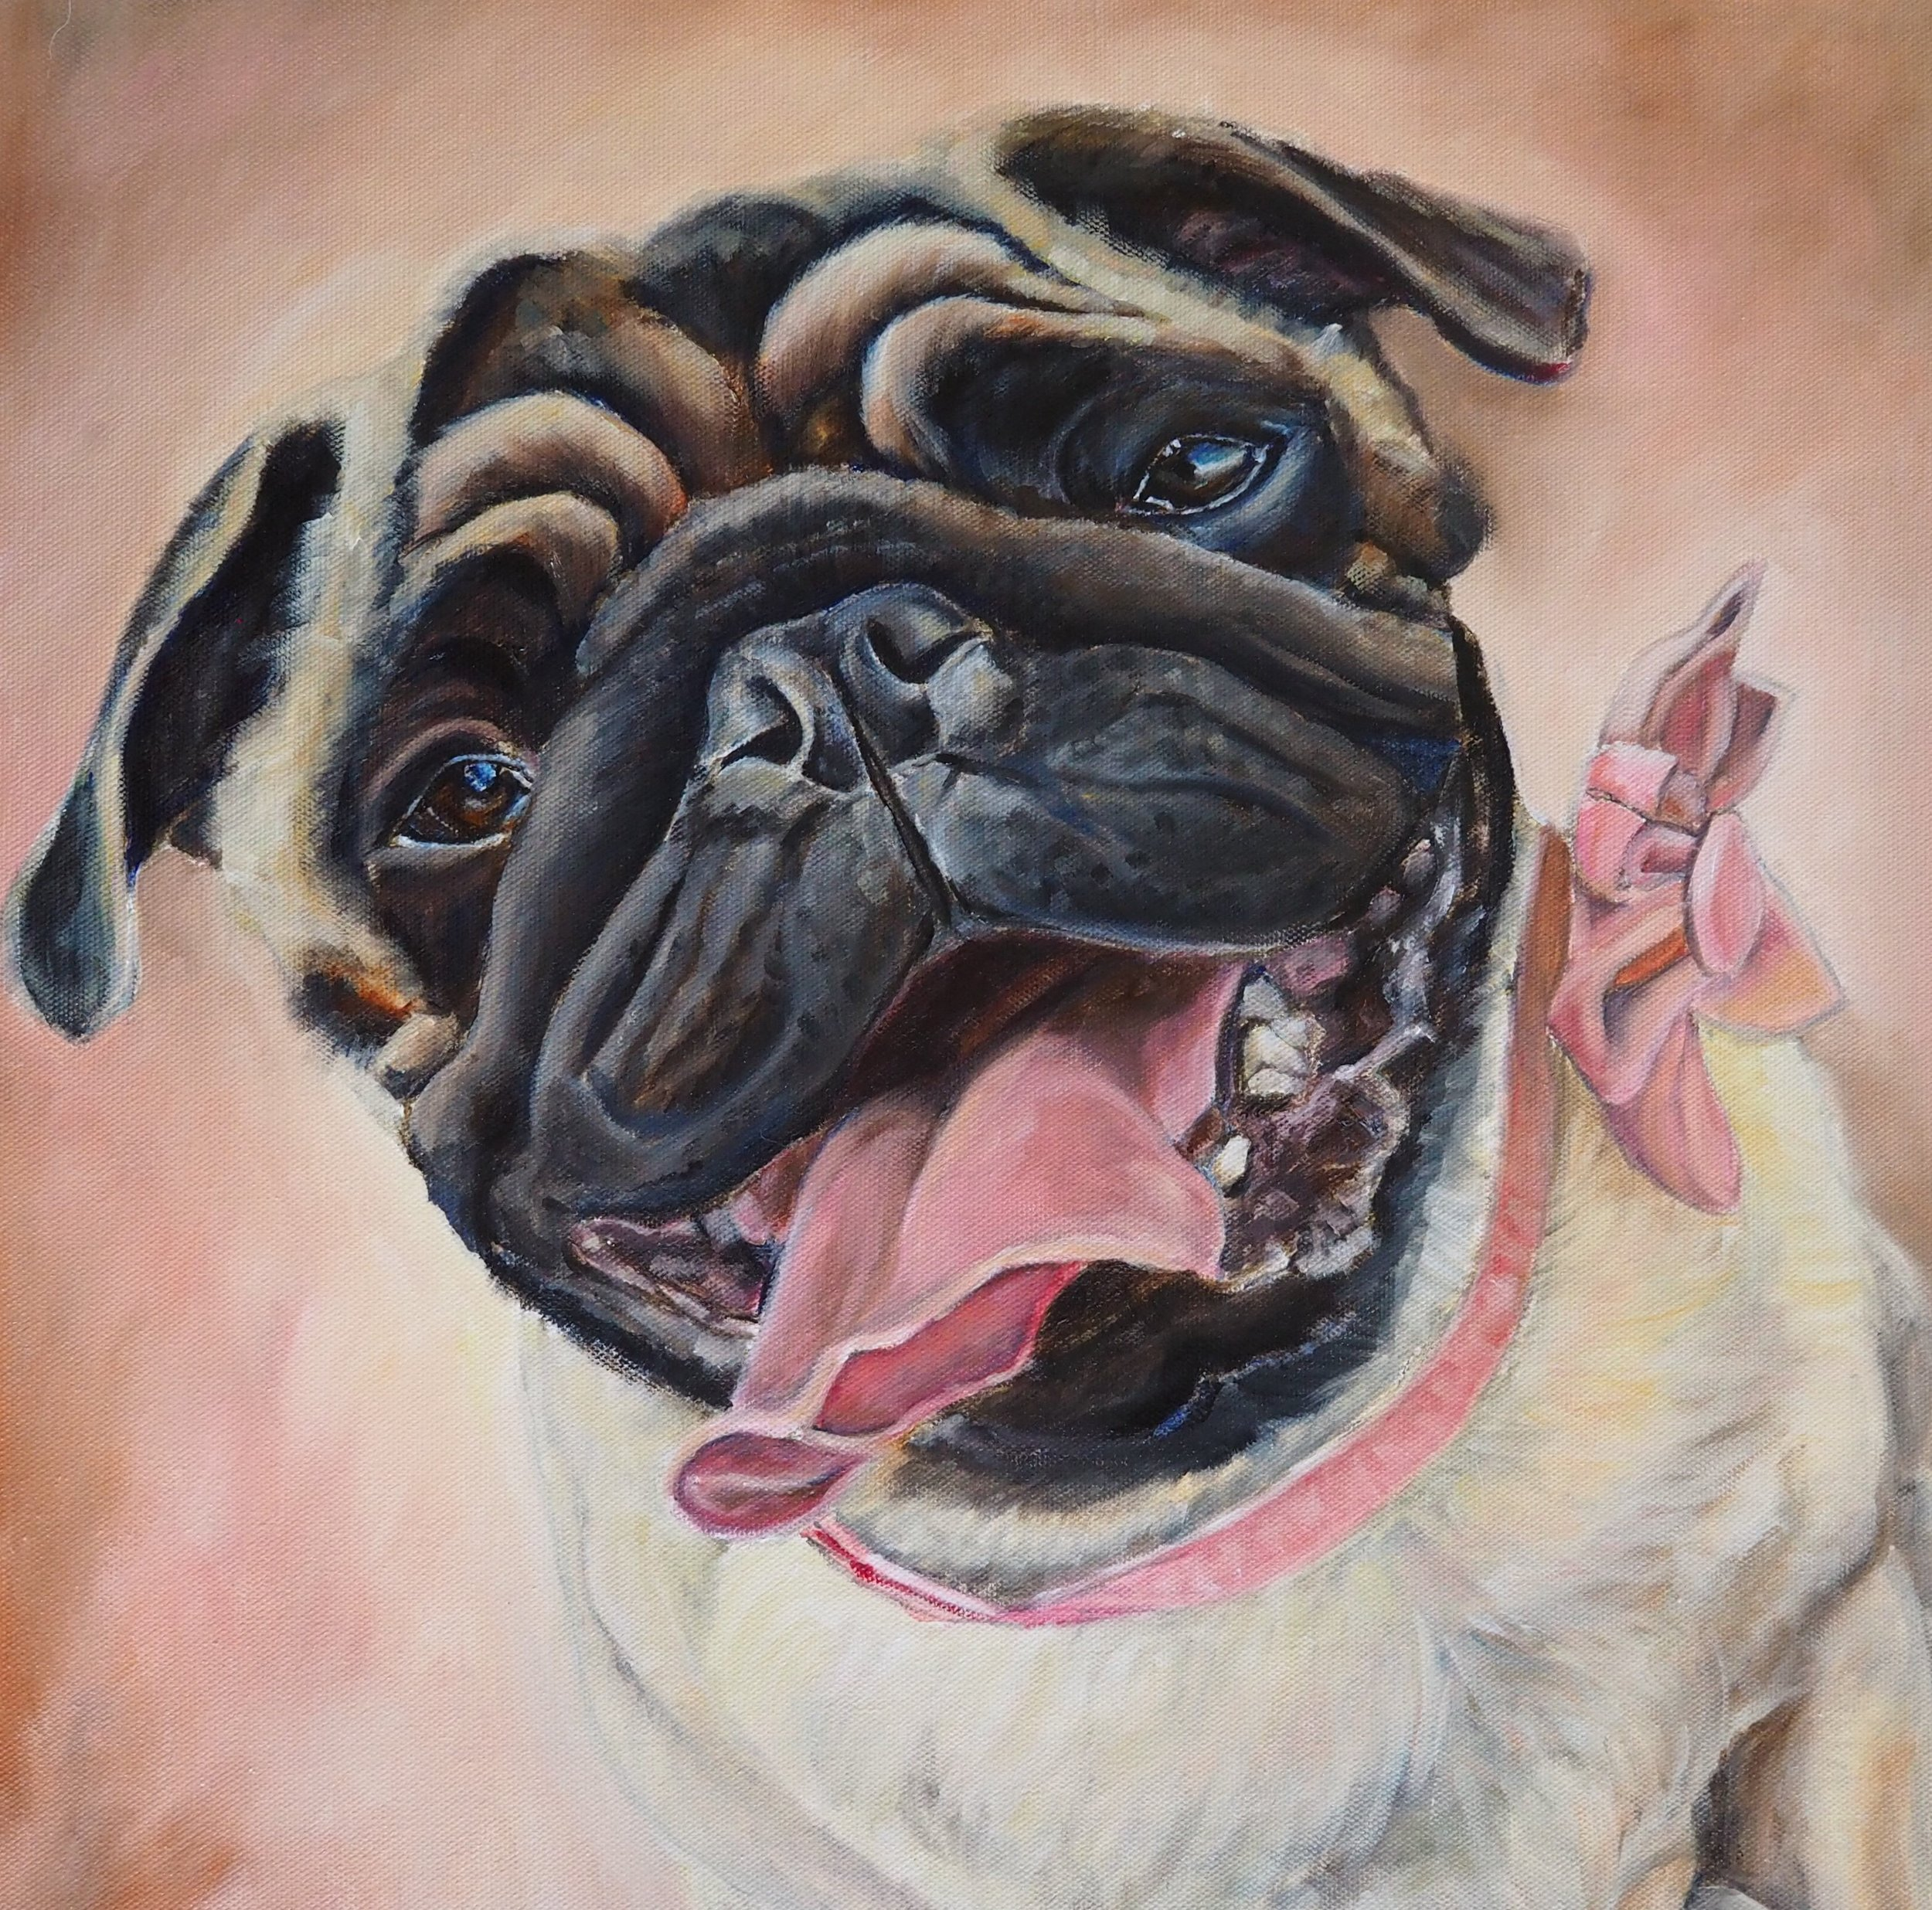 DOG PAINTING OF SMILING PUG HAND PAINTED FROM PHOTO BY  ARTIST OPAL PASTRO ART